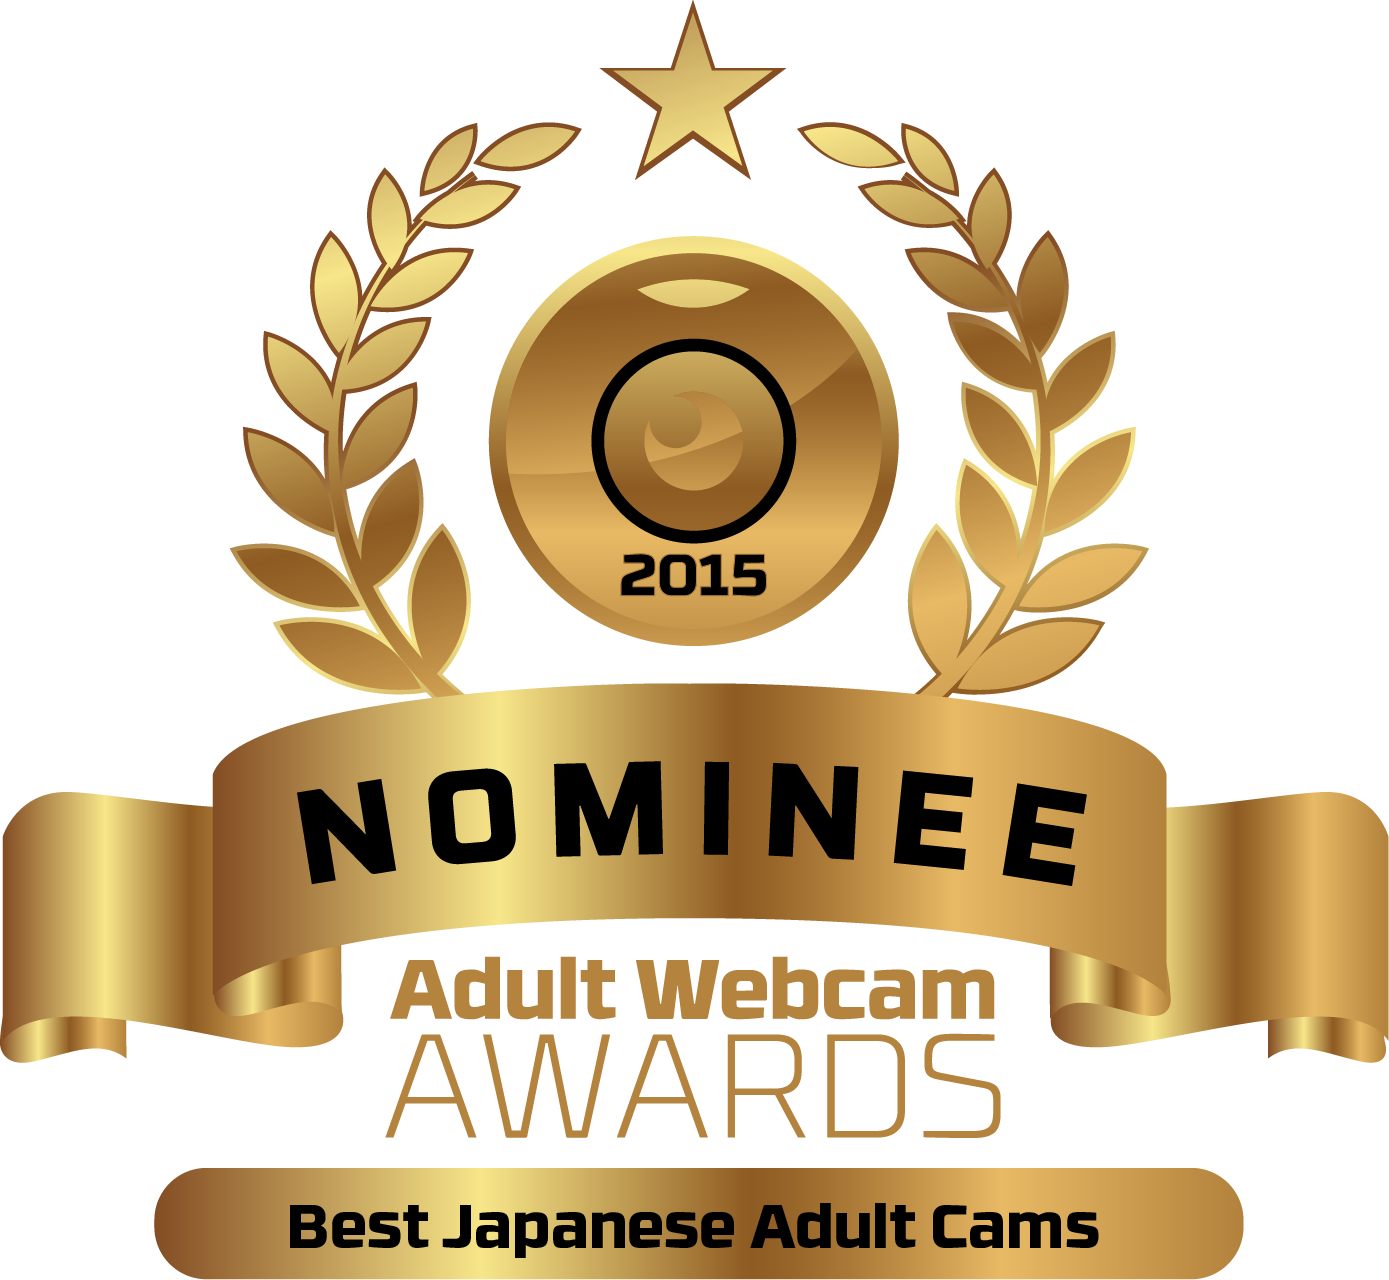 vote in the poll for the best japanese live adult webcam site here